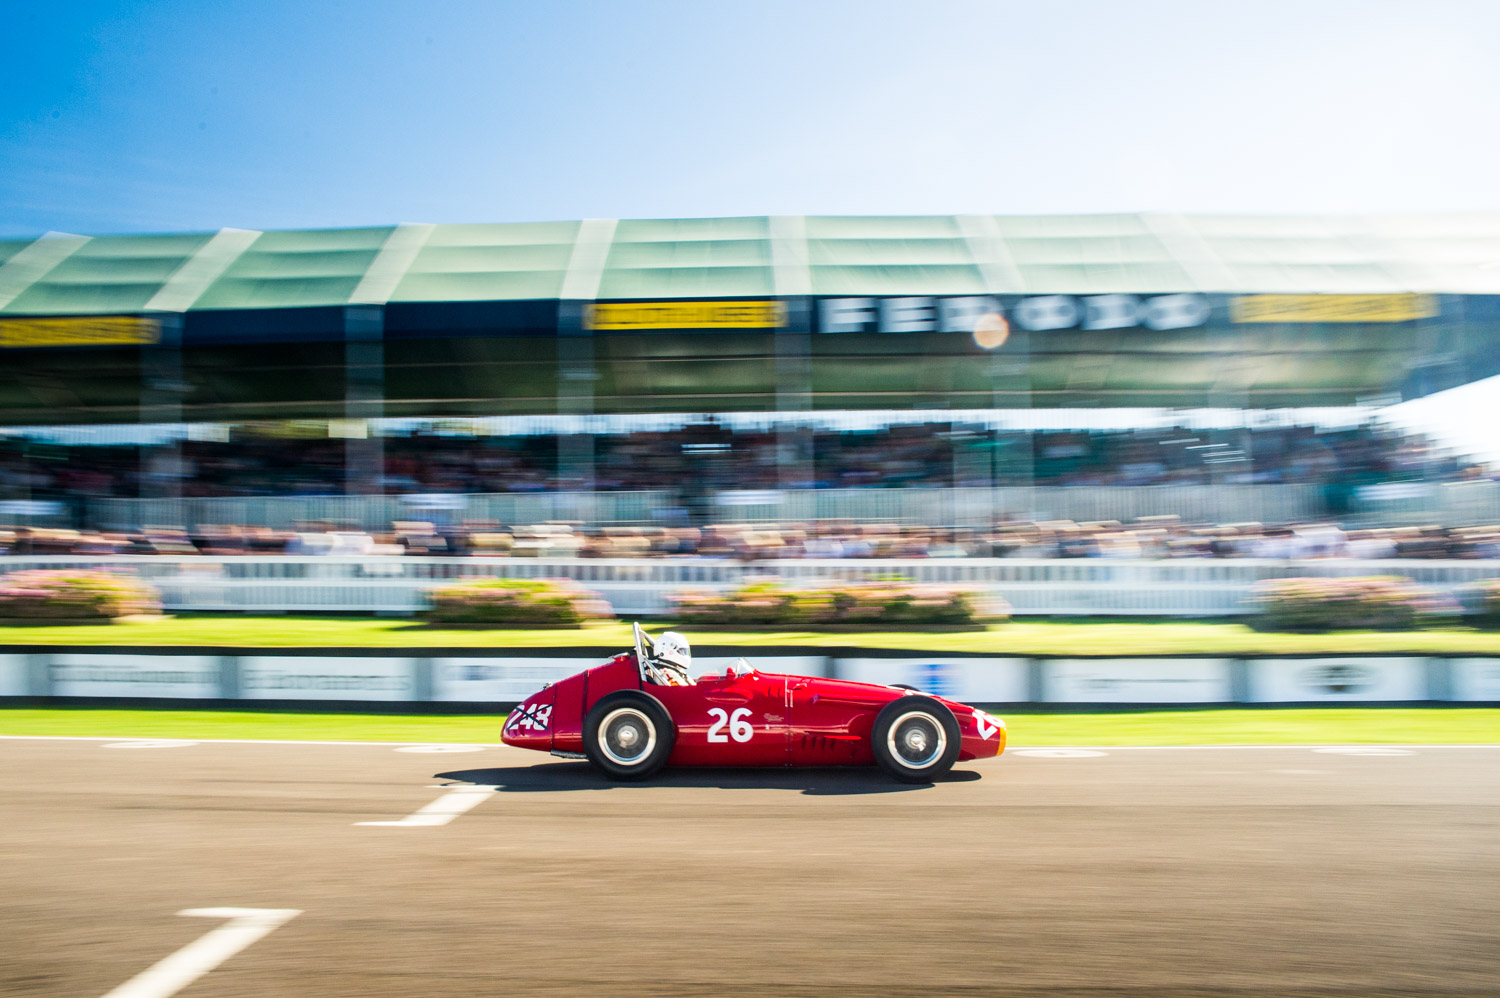 Jayson-Fong-Photography-Form-and-function-international-Goodwood-Revival.jpg